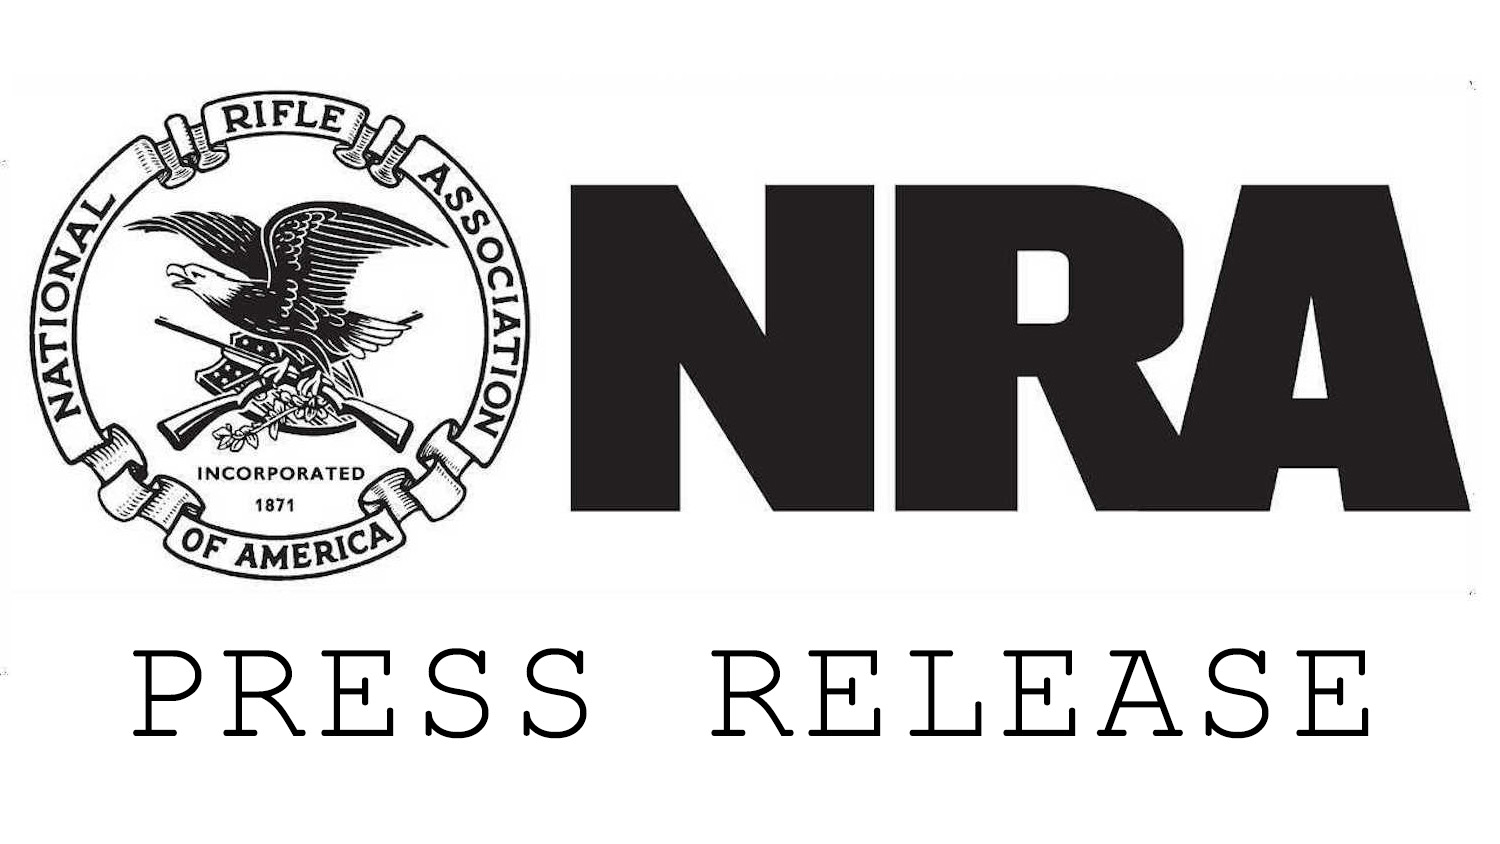 NRA Online Hunter Education Course Recognized with Media Industry Awards